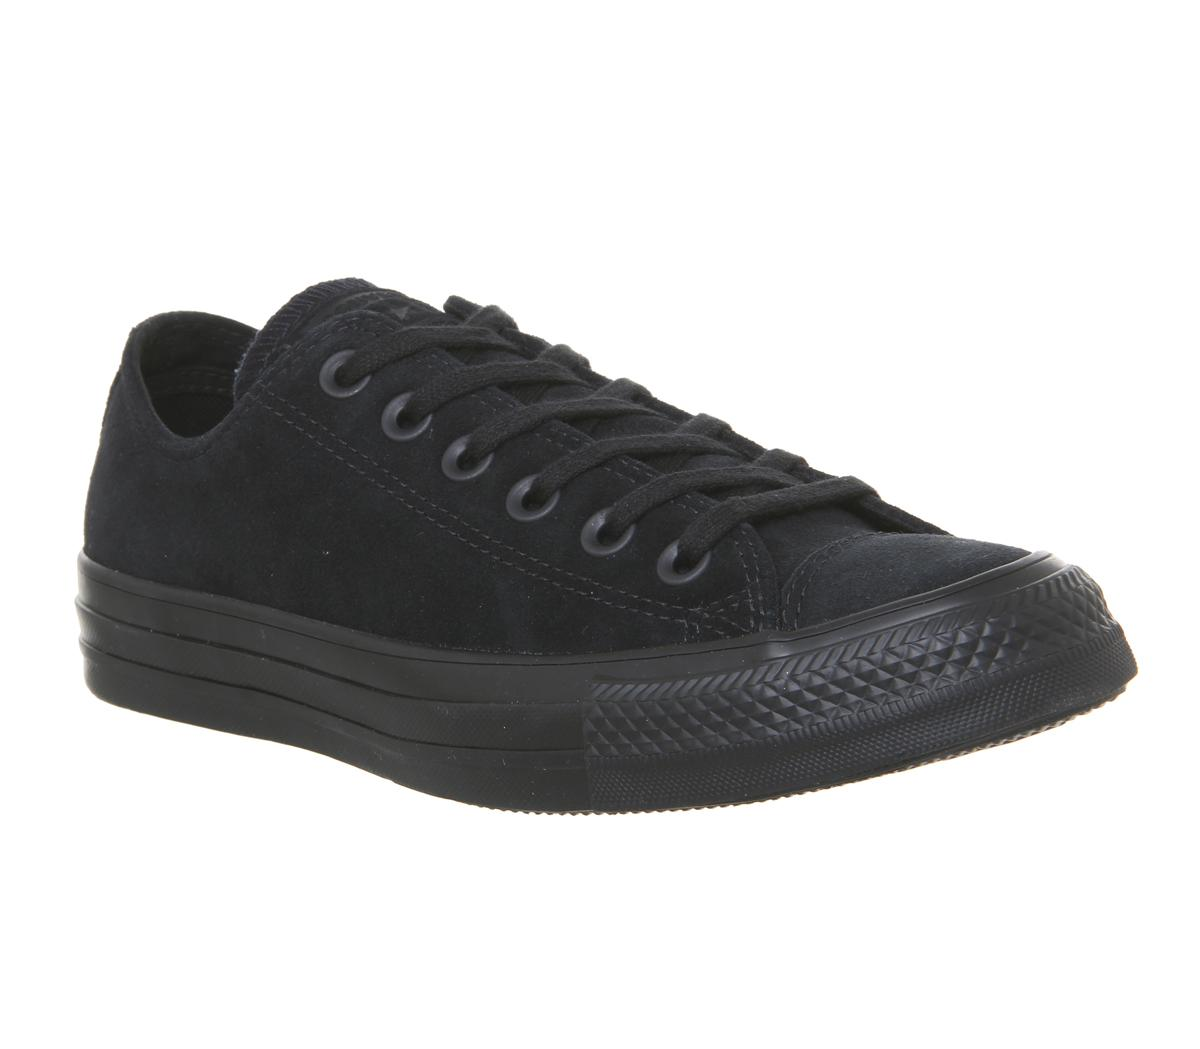 Black Black Mono Suede - Hers trainers